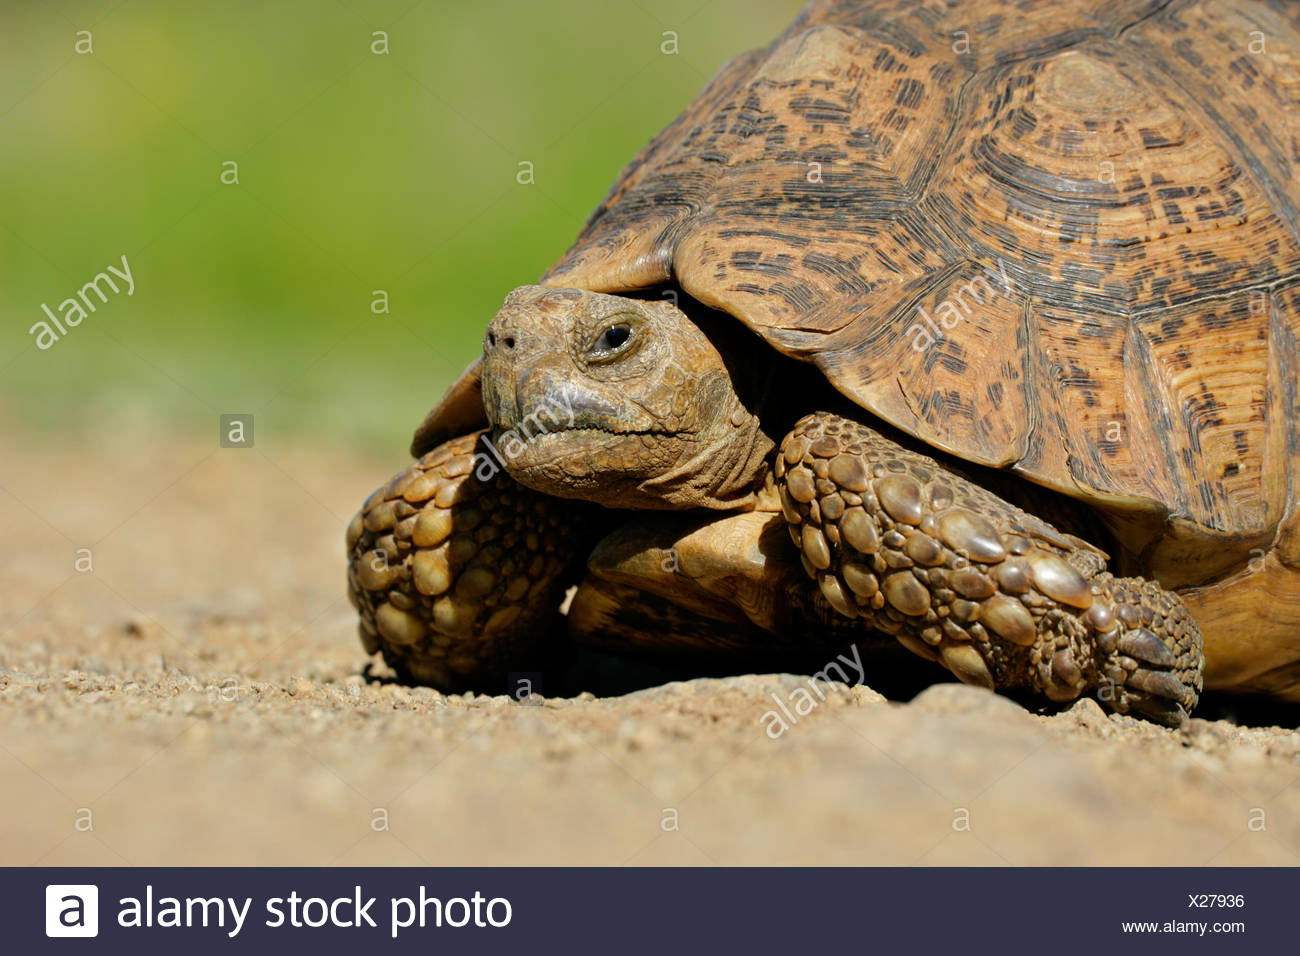 animal, reptile, africa, shell, African, tortoise, mountain, turtle, - Stock Image